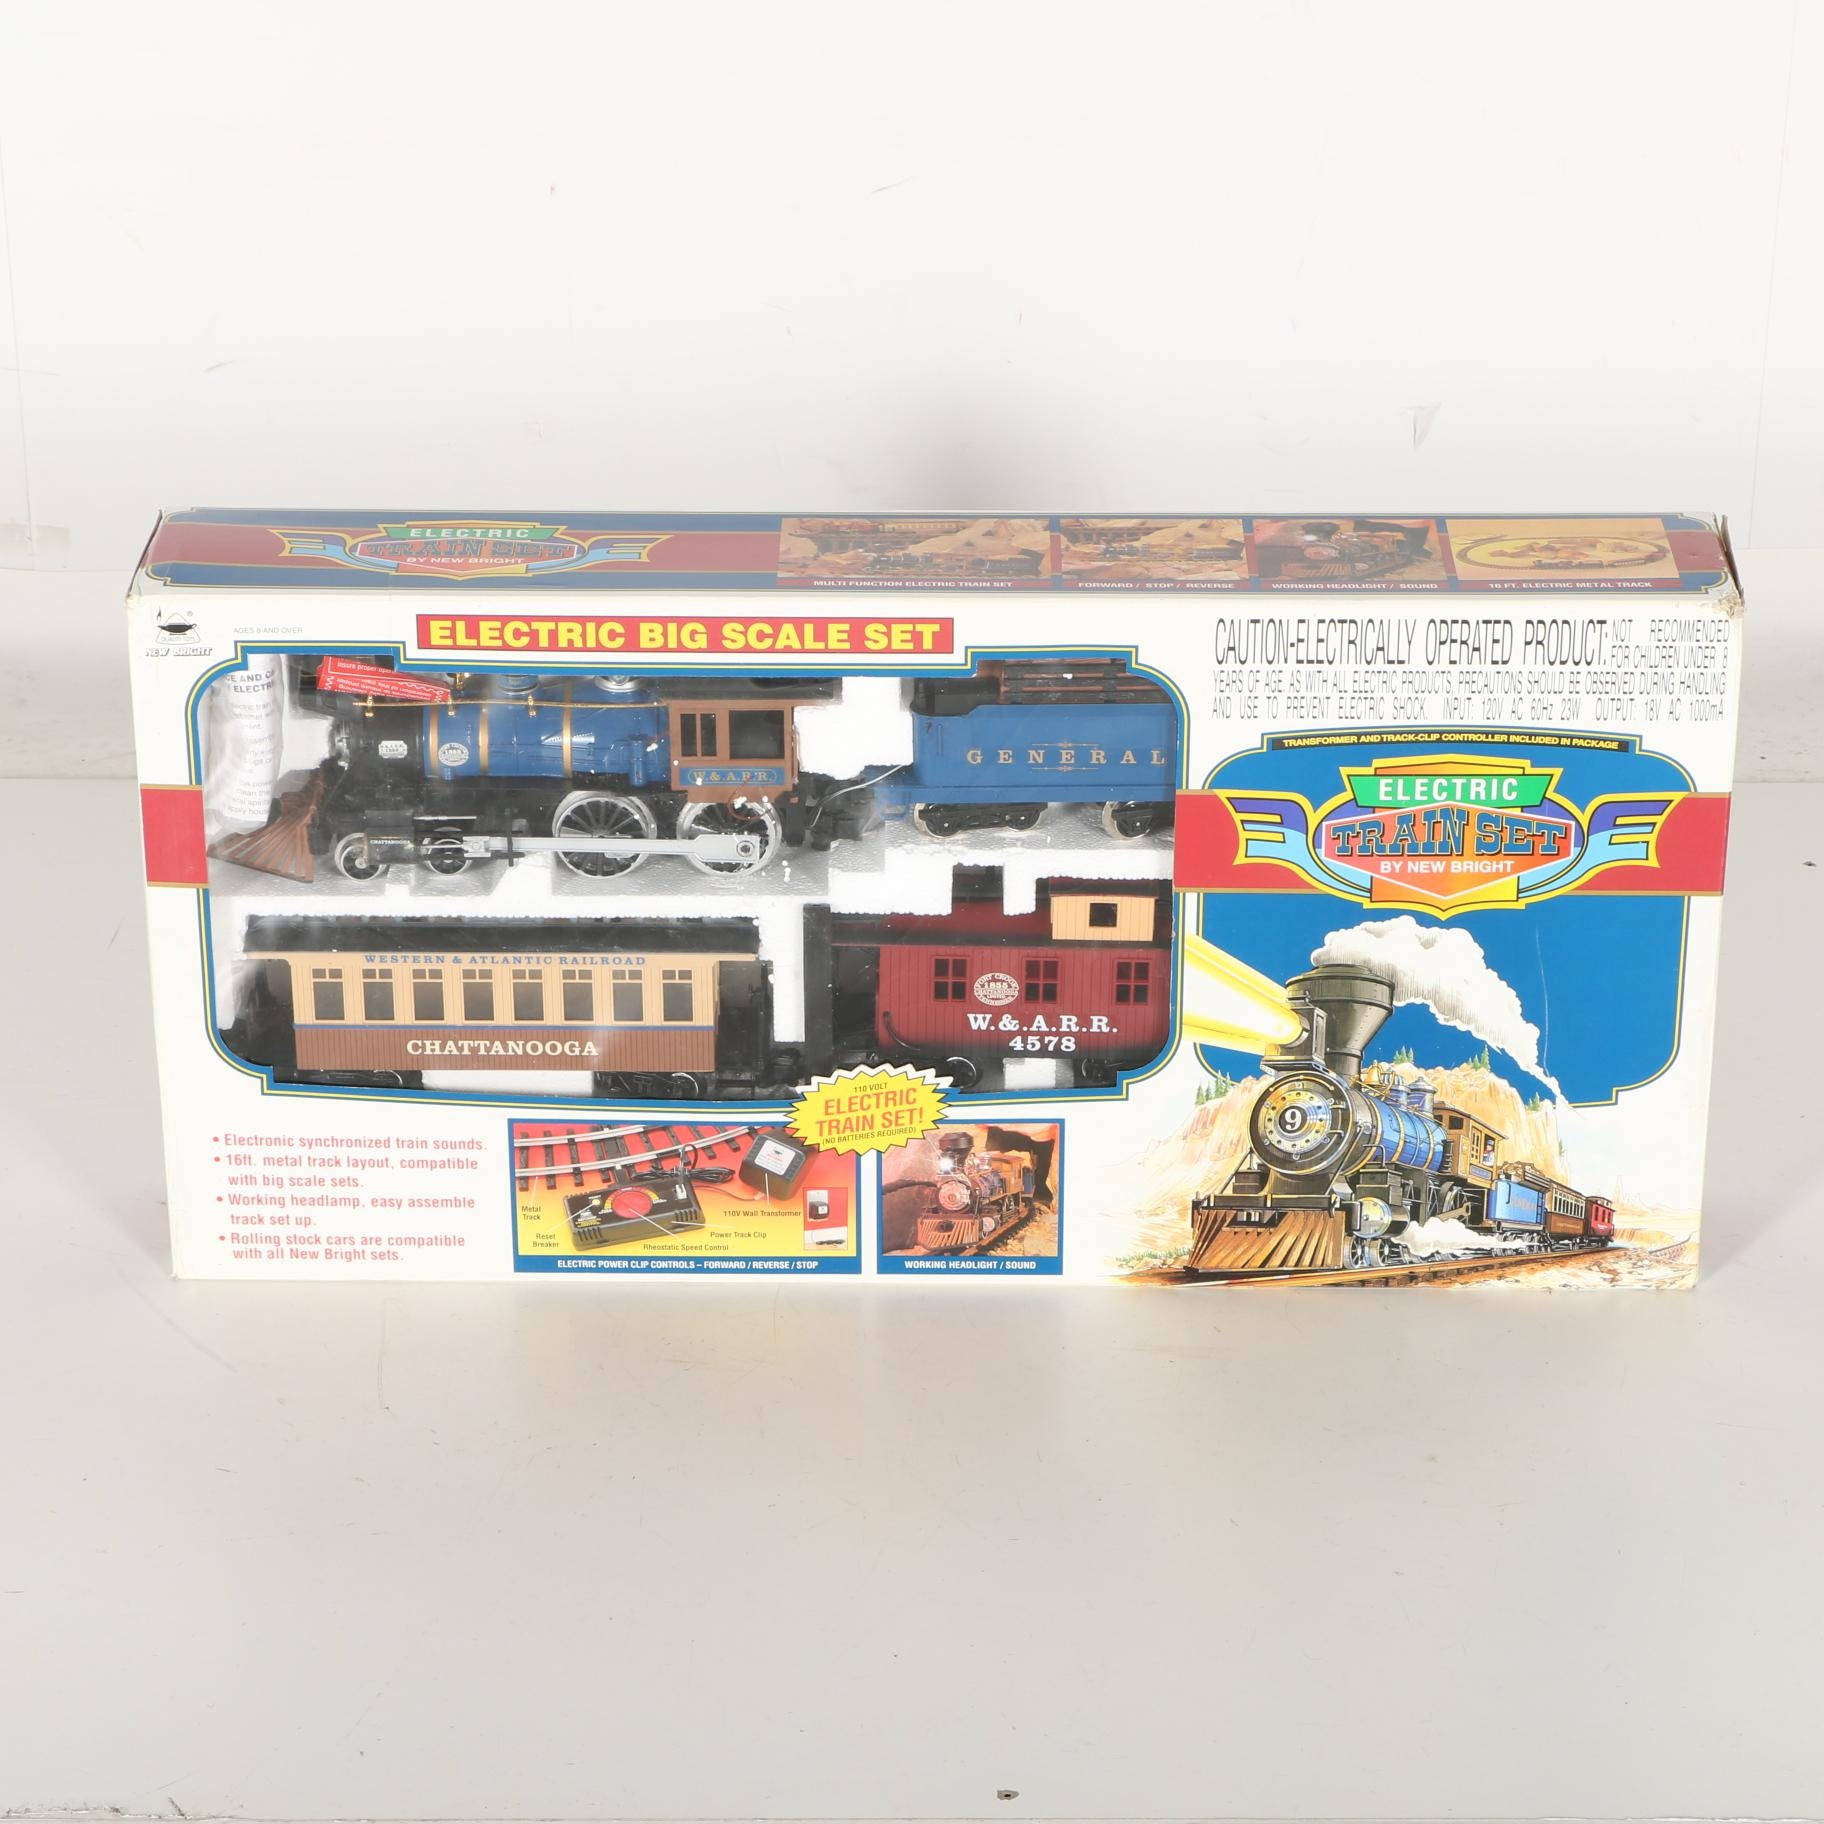 Electric Big Scale Toy Train Set by New Bright